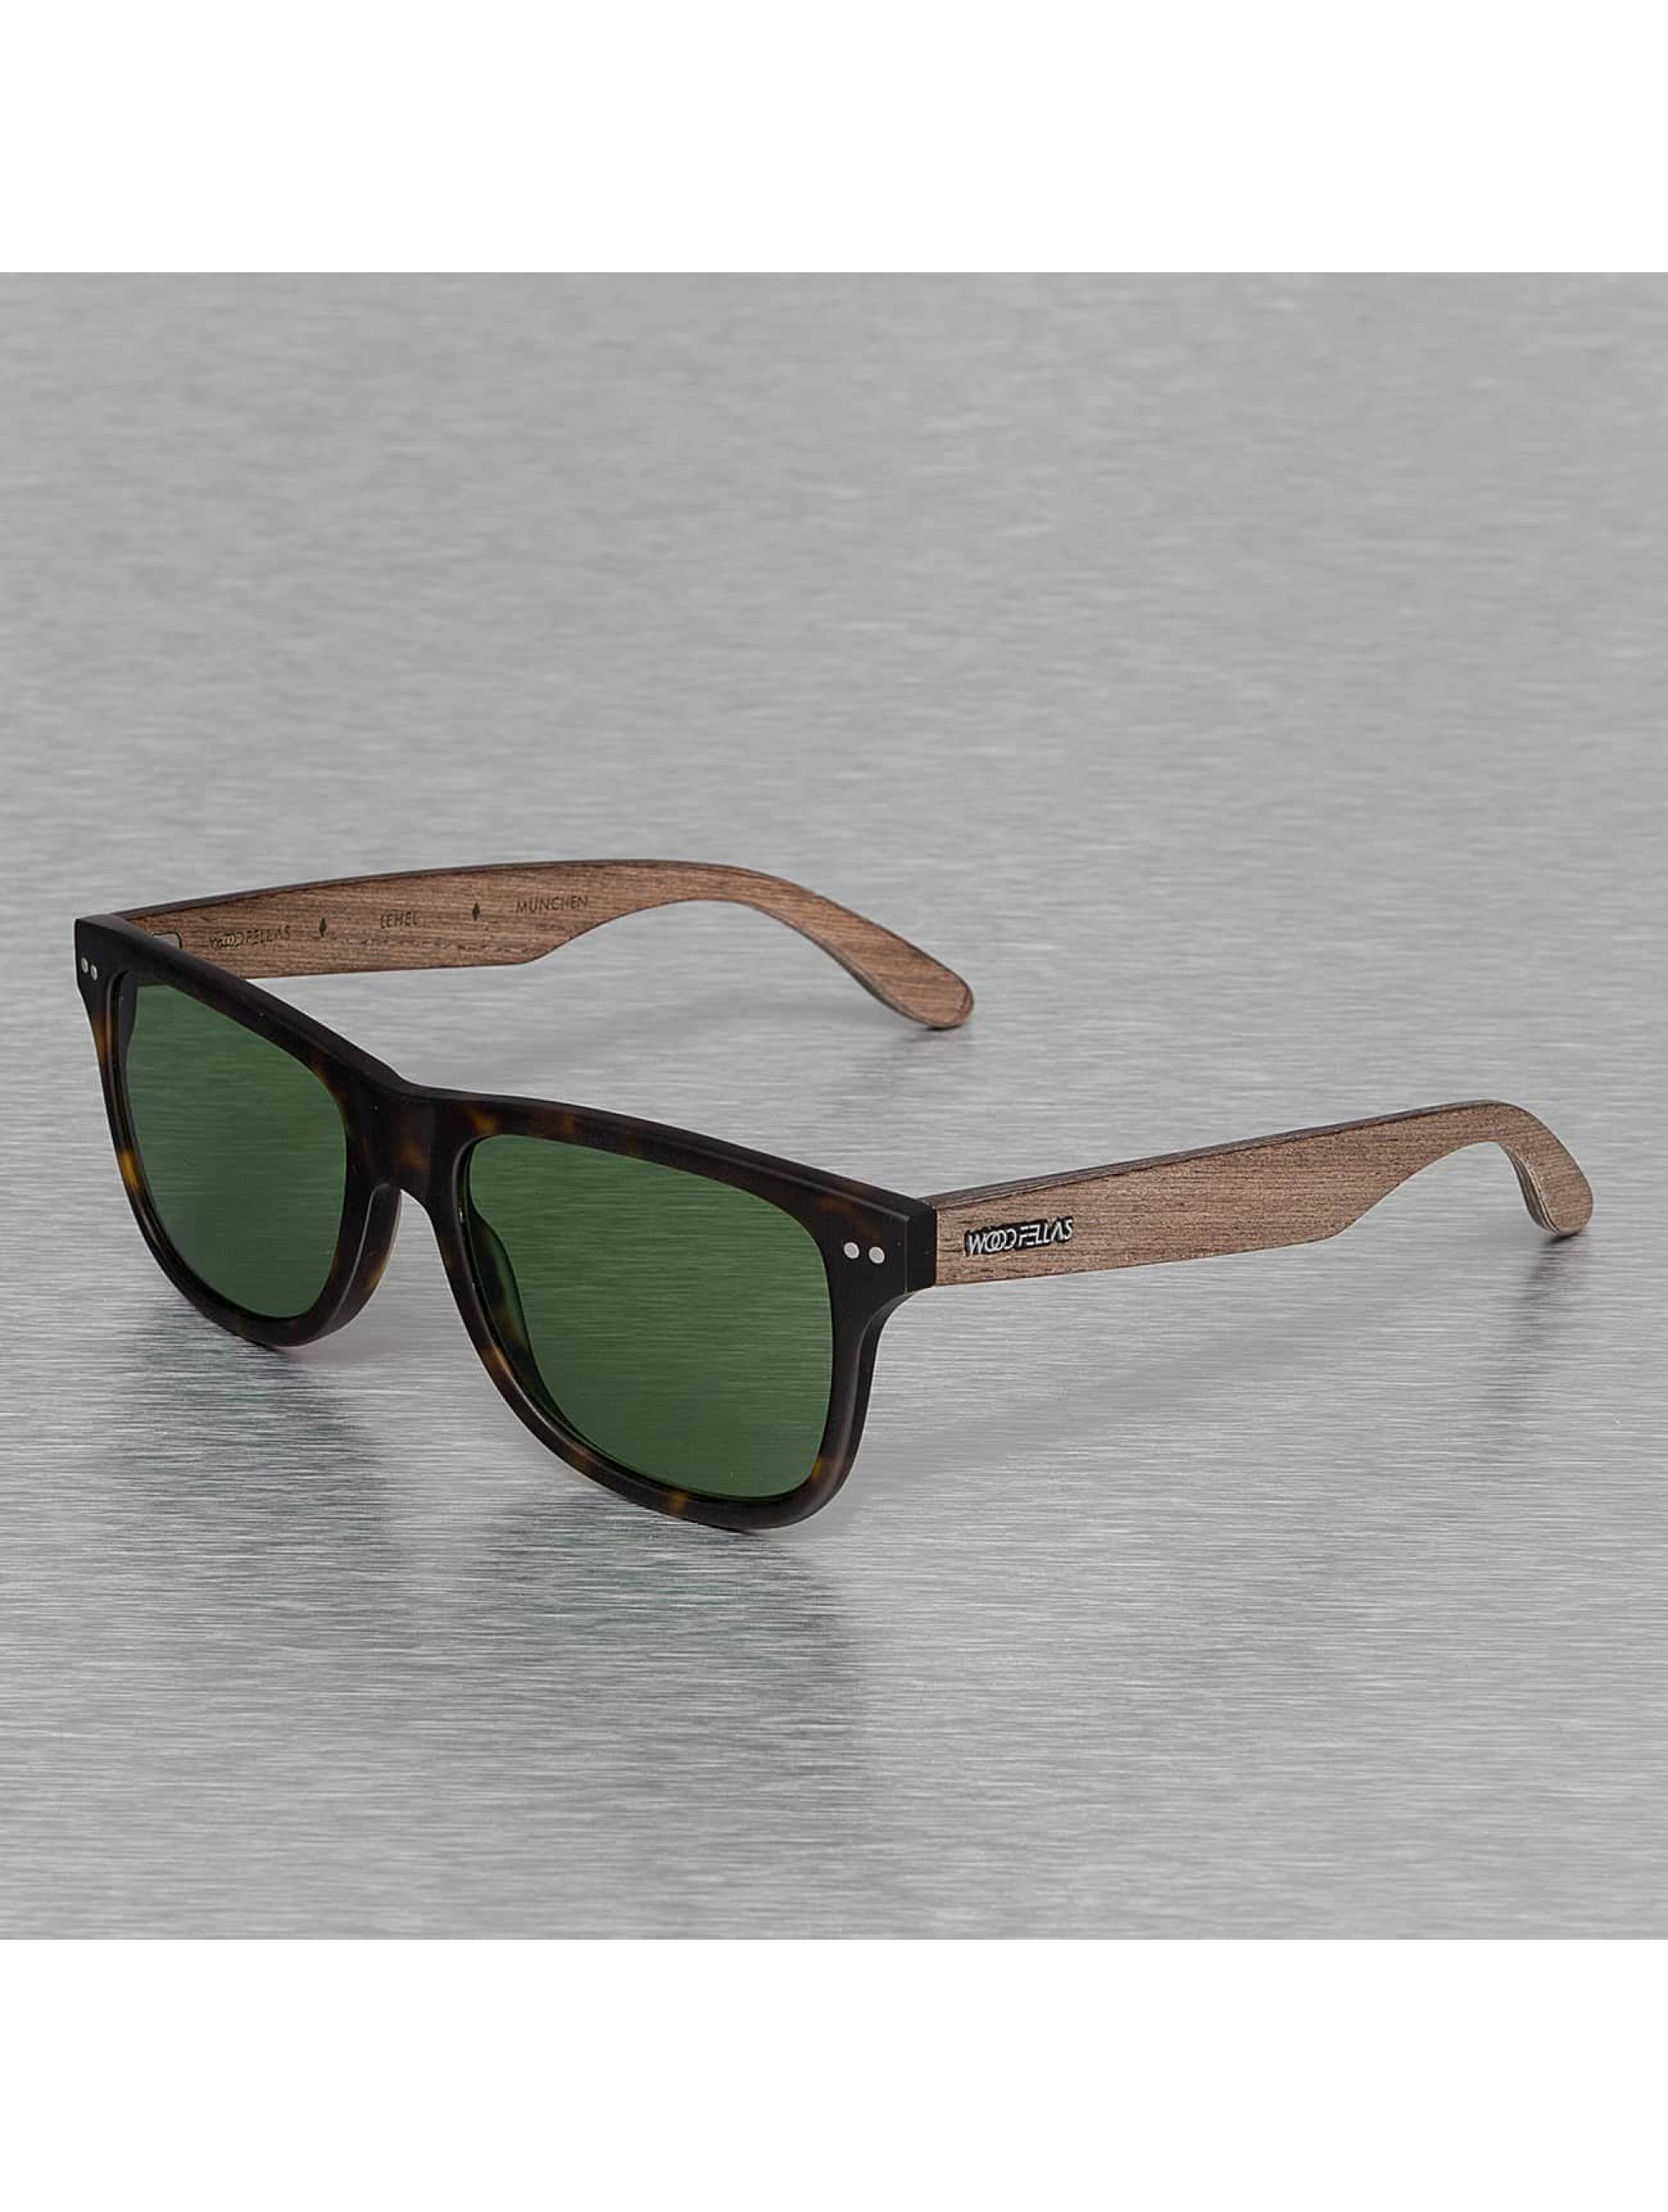 Wood Fellas Eyewear Briller Eyewear Lehel Polarized Mirror brun